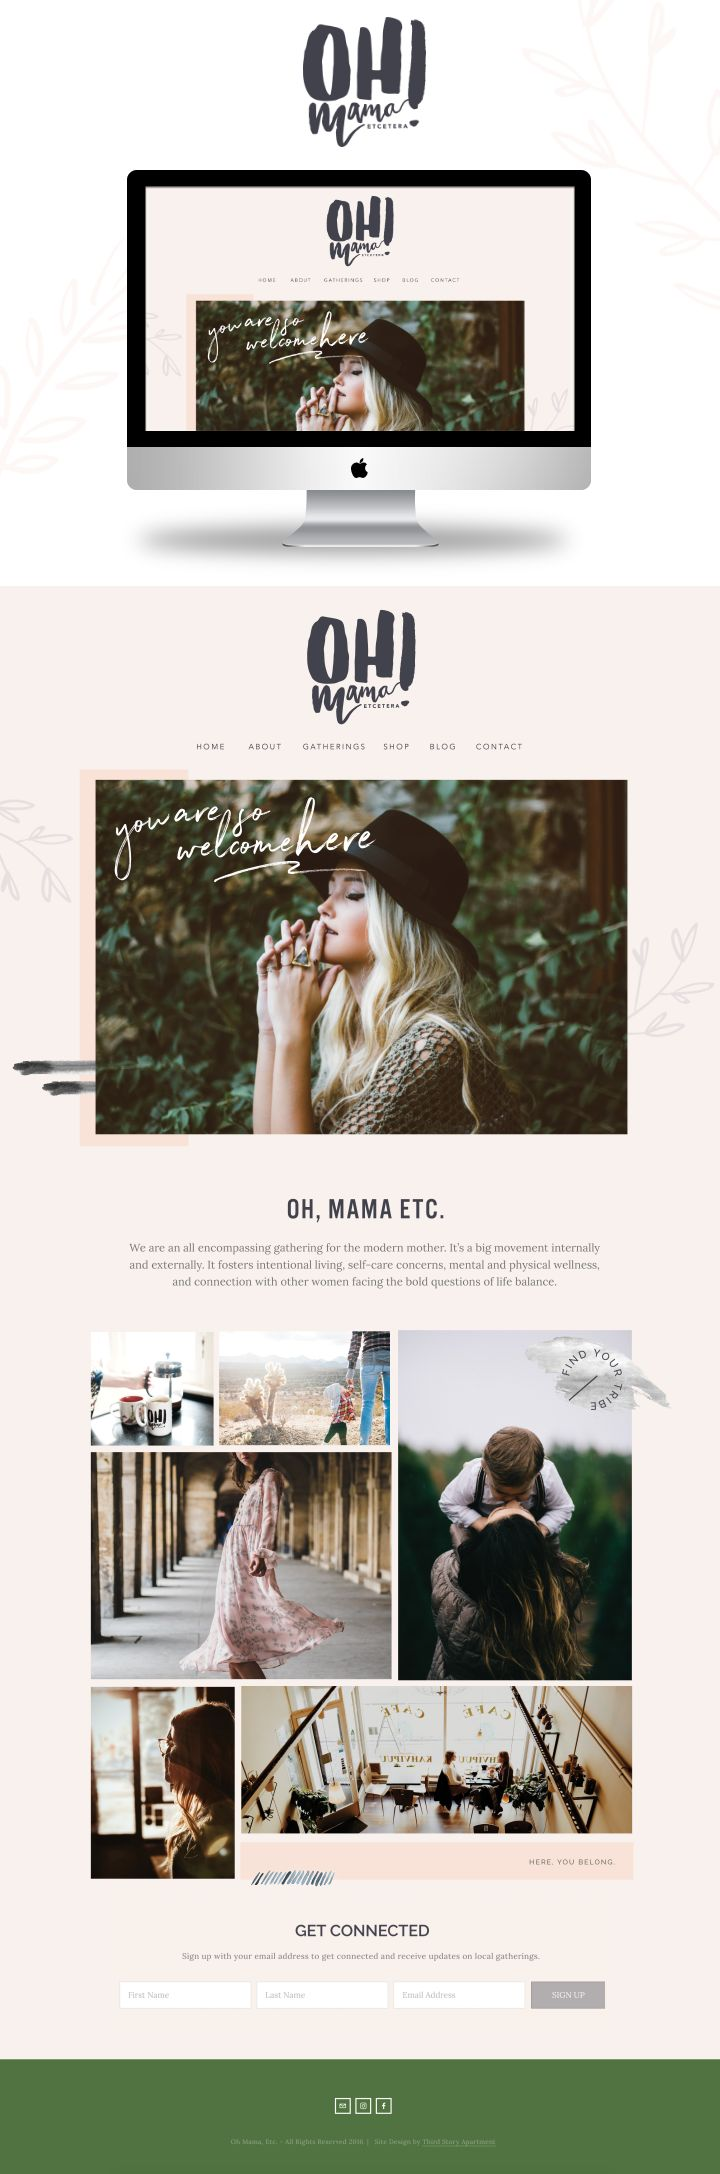 Web Design + Branding by Lindsey Eryn Clark of Third Story Apartment.   _ Mommy blog, mom blogger, community groups for mom, community, blog inspiration, squarespace website, squarespace inspo, feminine branding, website inspo, website inspiration, graphic design, graphic design inspo, modern web design, clean web design, hunter green website, illustration in website